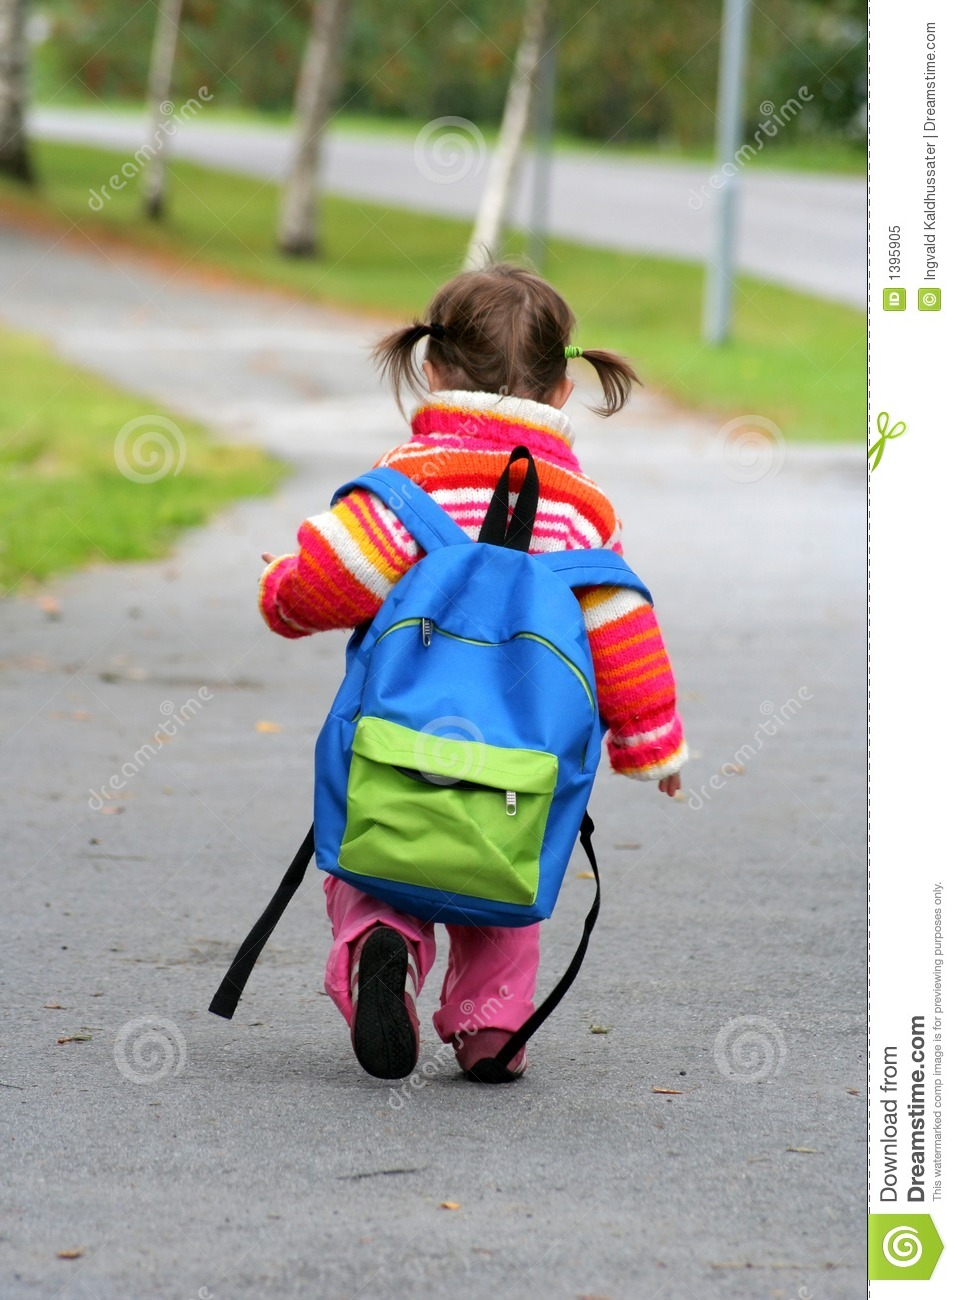 b942bbf02dcd Small girl large backpack stock image. Image of walk